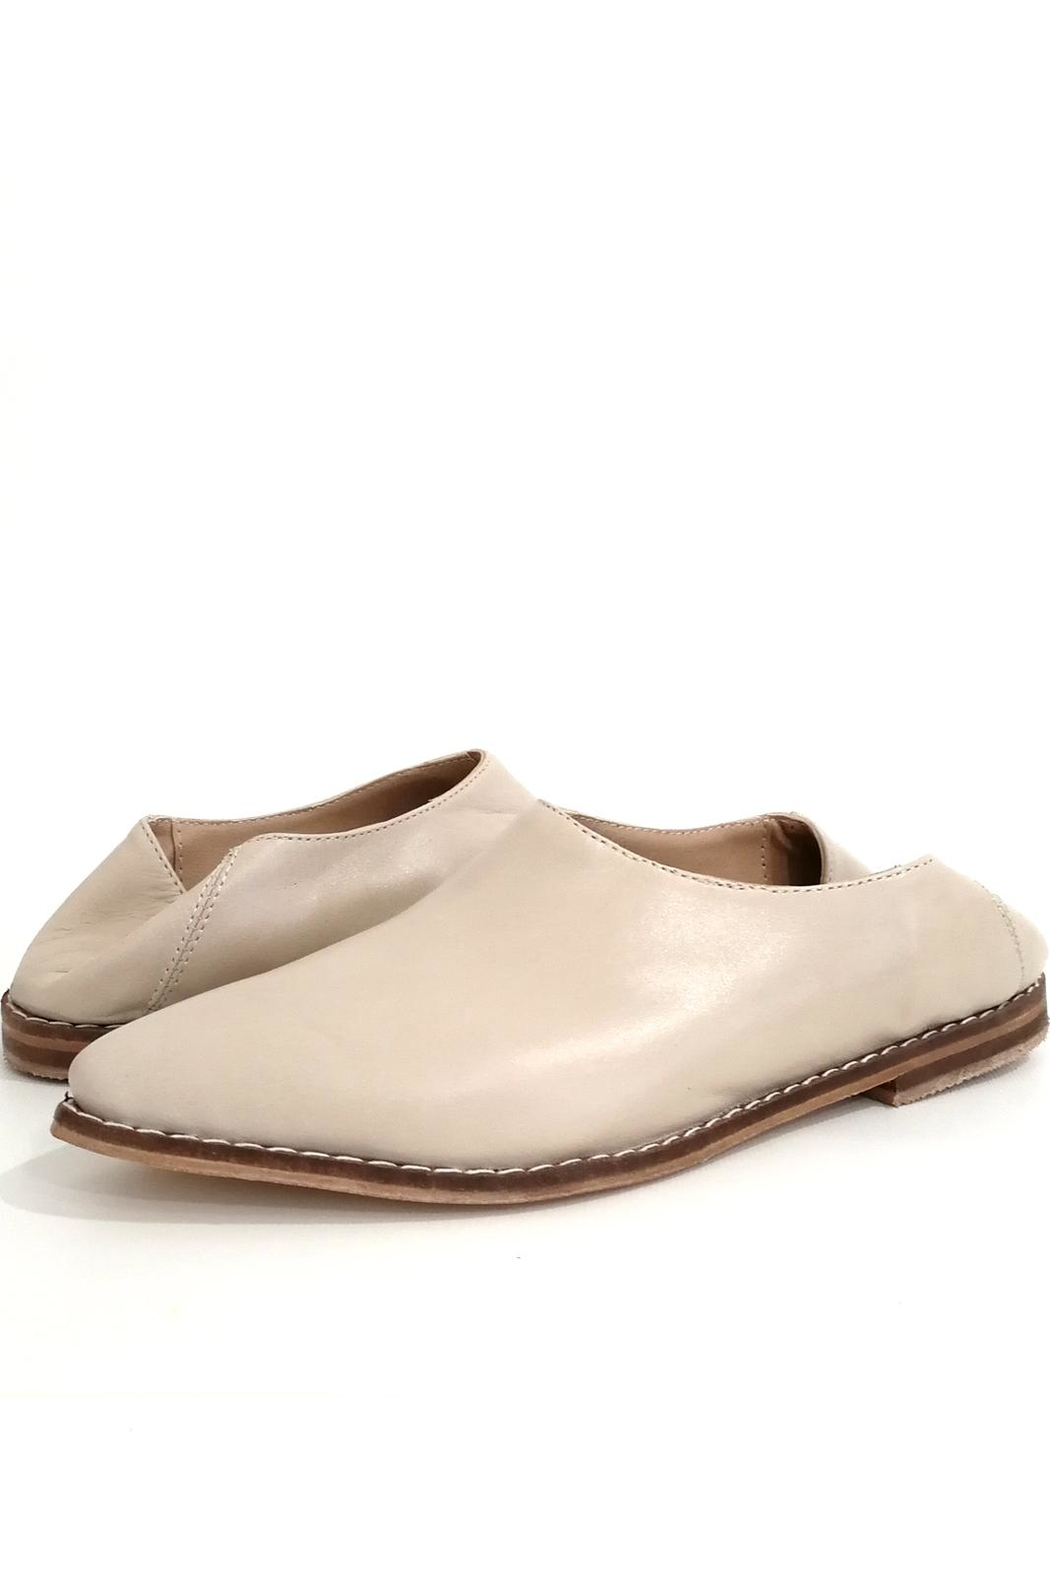 MIYE COLLAZZO Beige Mule Shoes - Side Cropped Image